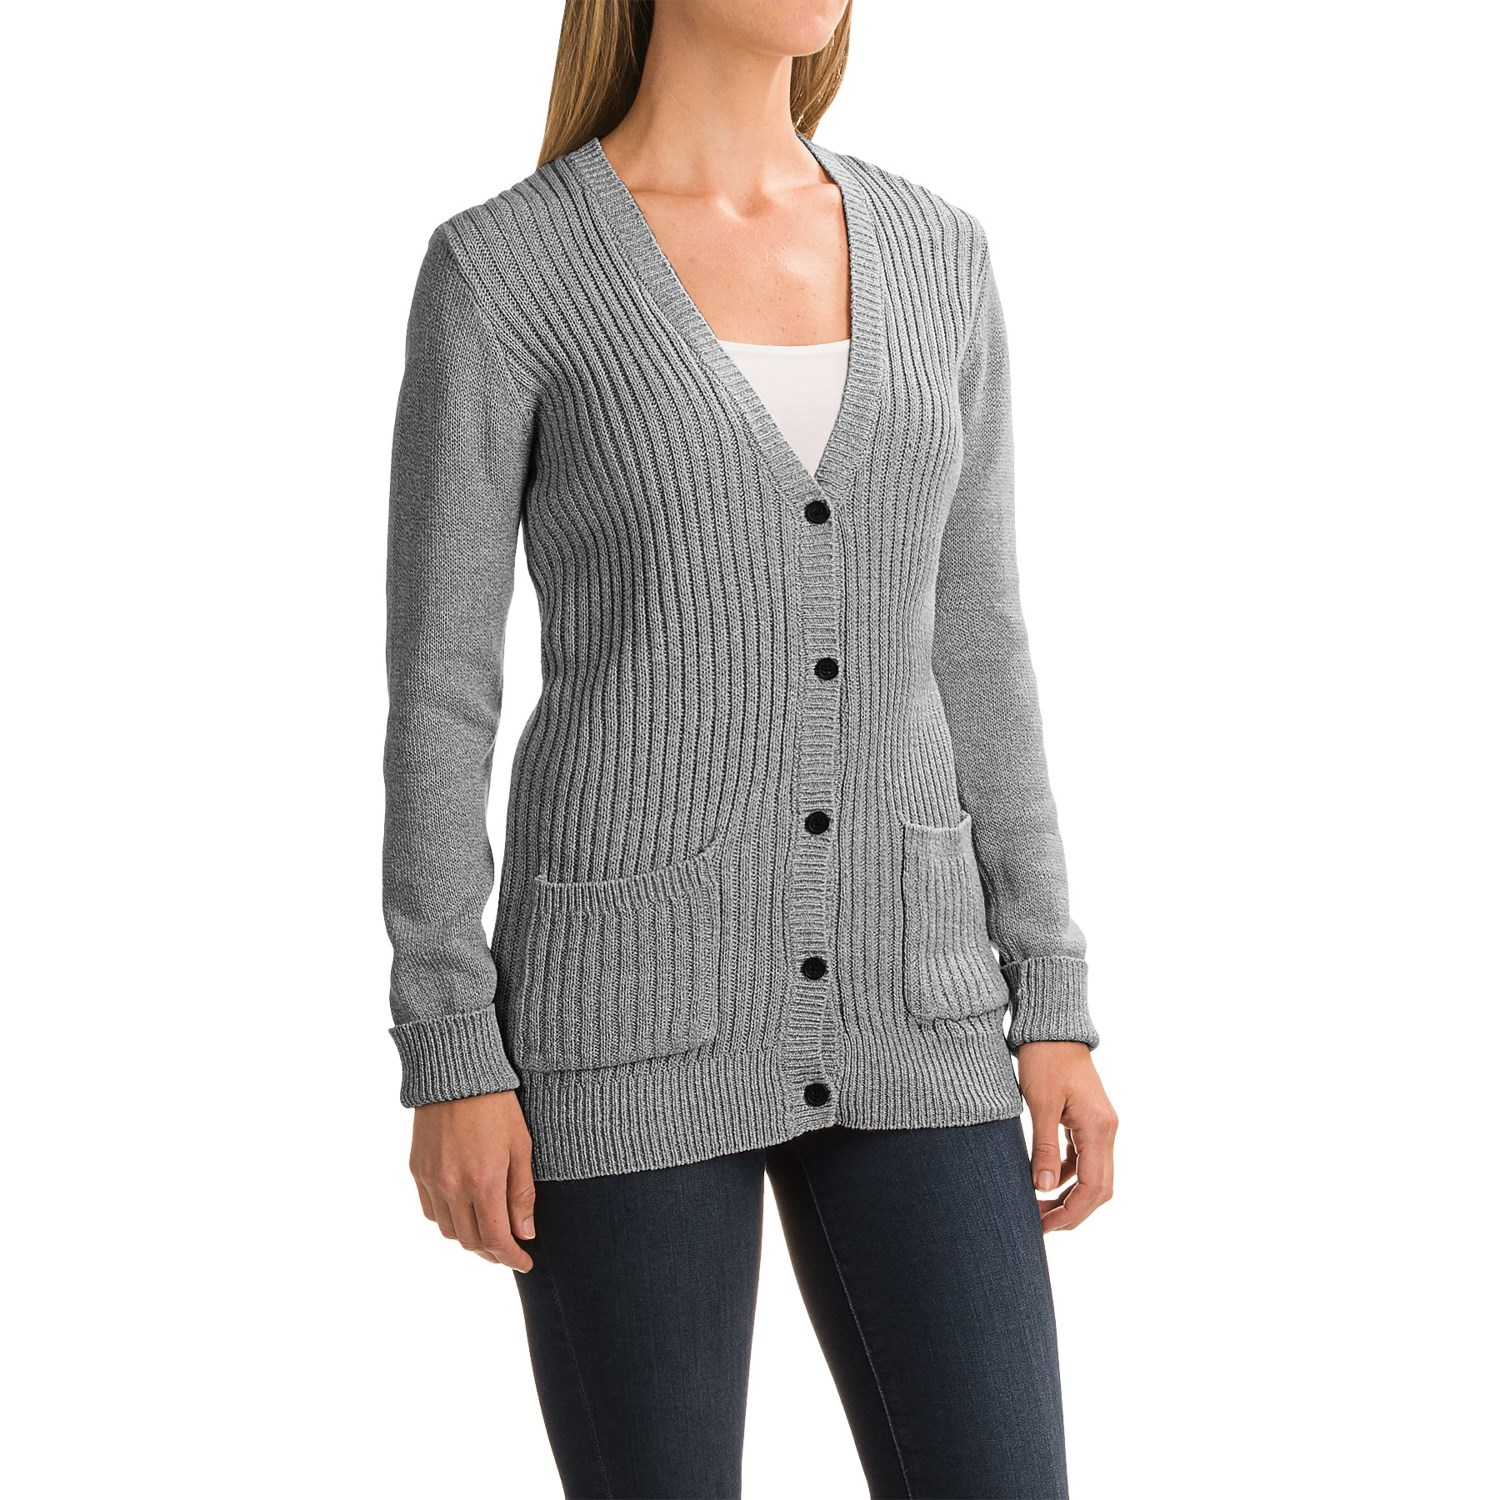 Gramicci Snuggled Up Cardigan Sweater (For Women) - Save 30%